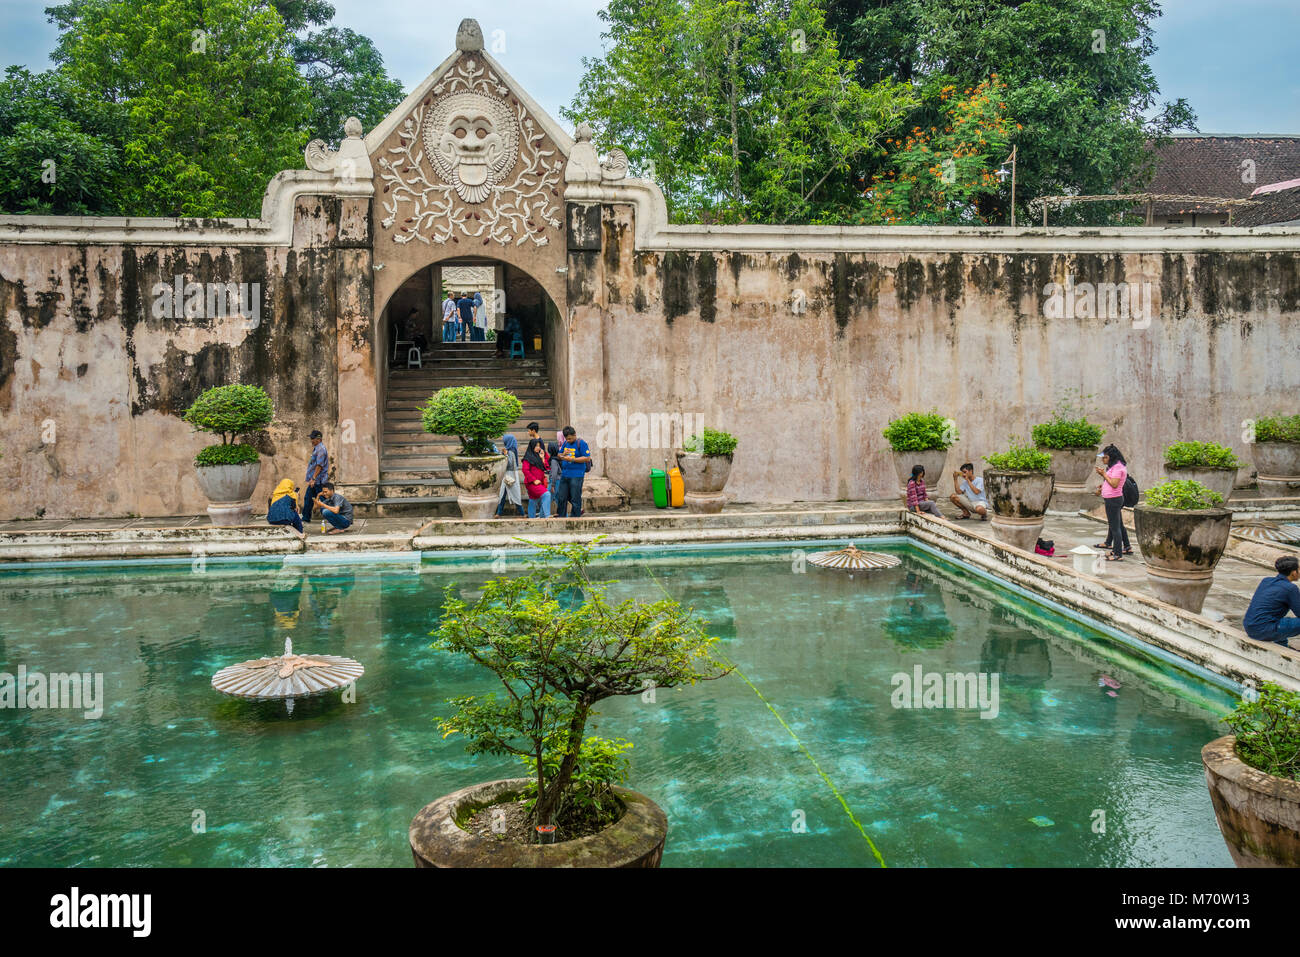 bathing complex of the Taman Sari Water Castle, the site of a former royal garden of the Sultanate of Yogyakarta, - Stock Image